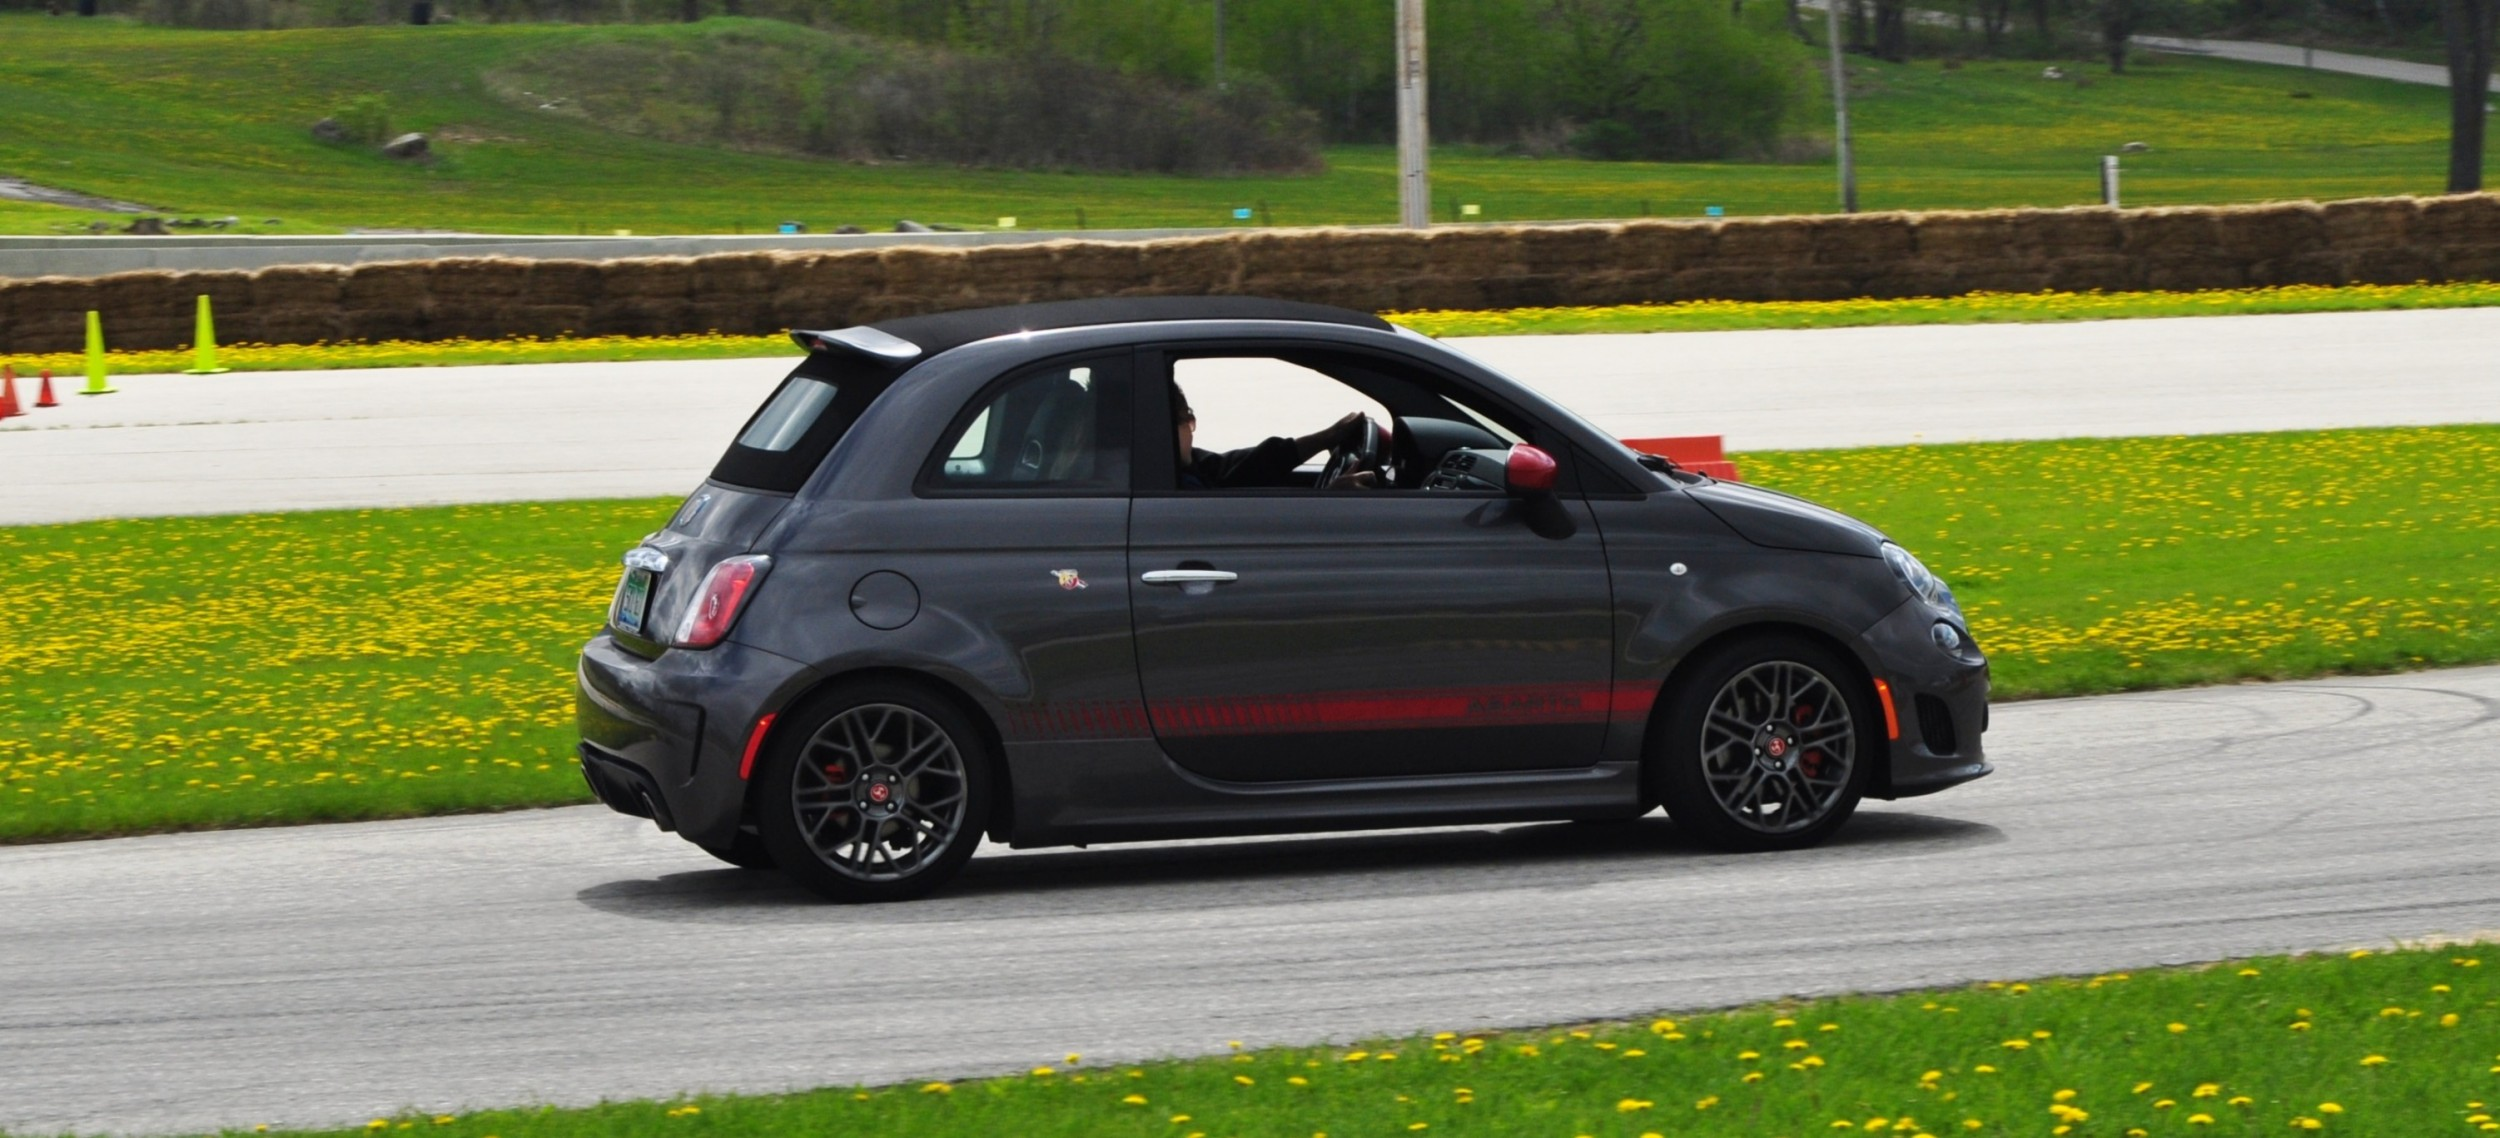 2014 fiat abarth 500c wins hottest exhaust note on autocross track. Black Bedroom Furniture Sets. Home Design Ideas